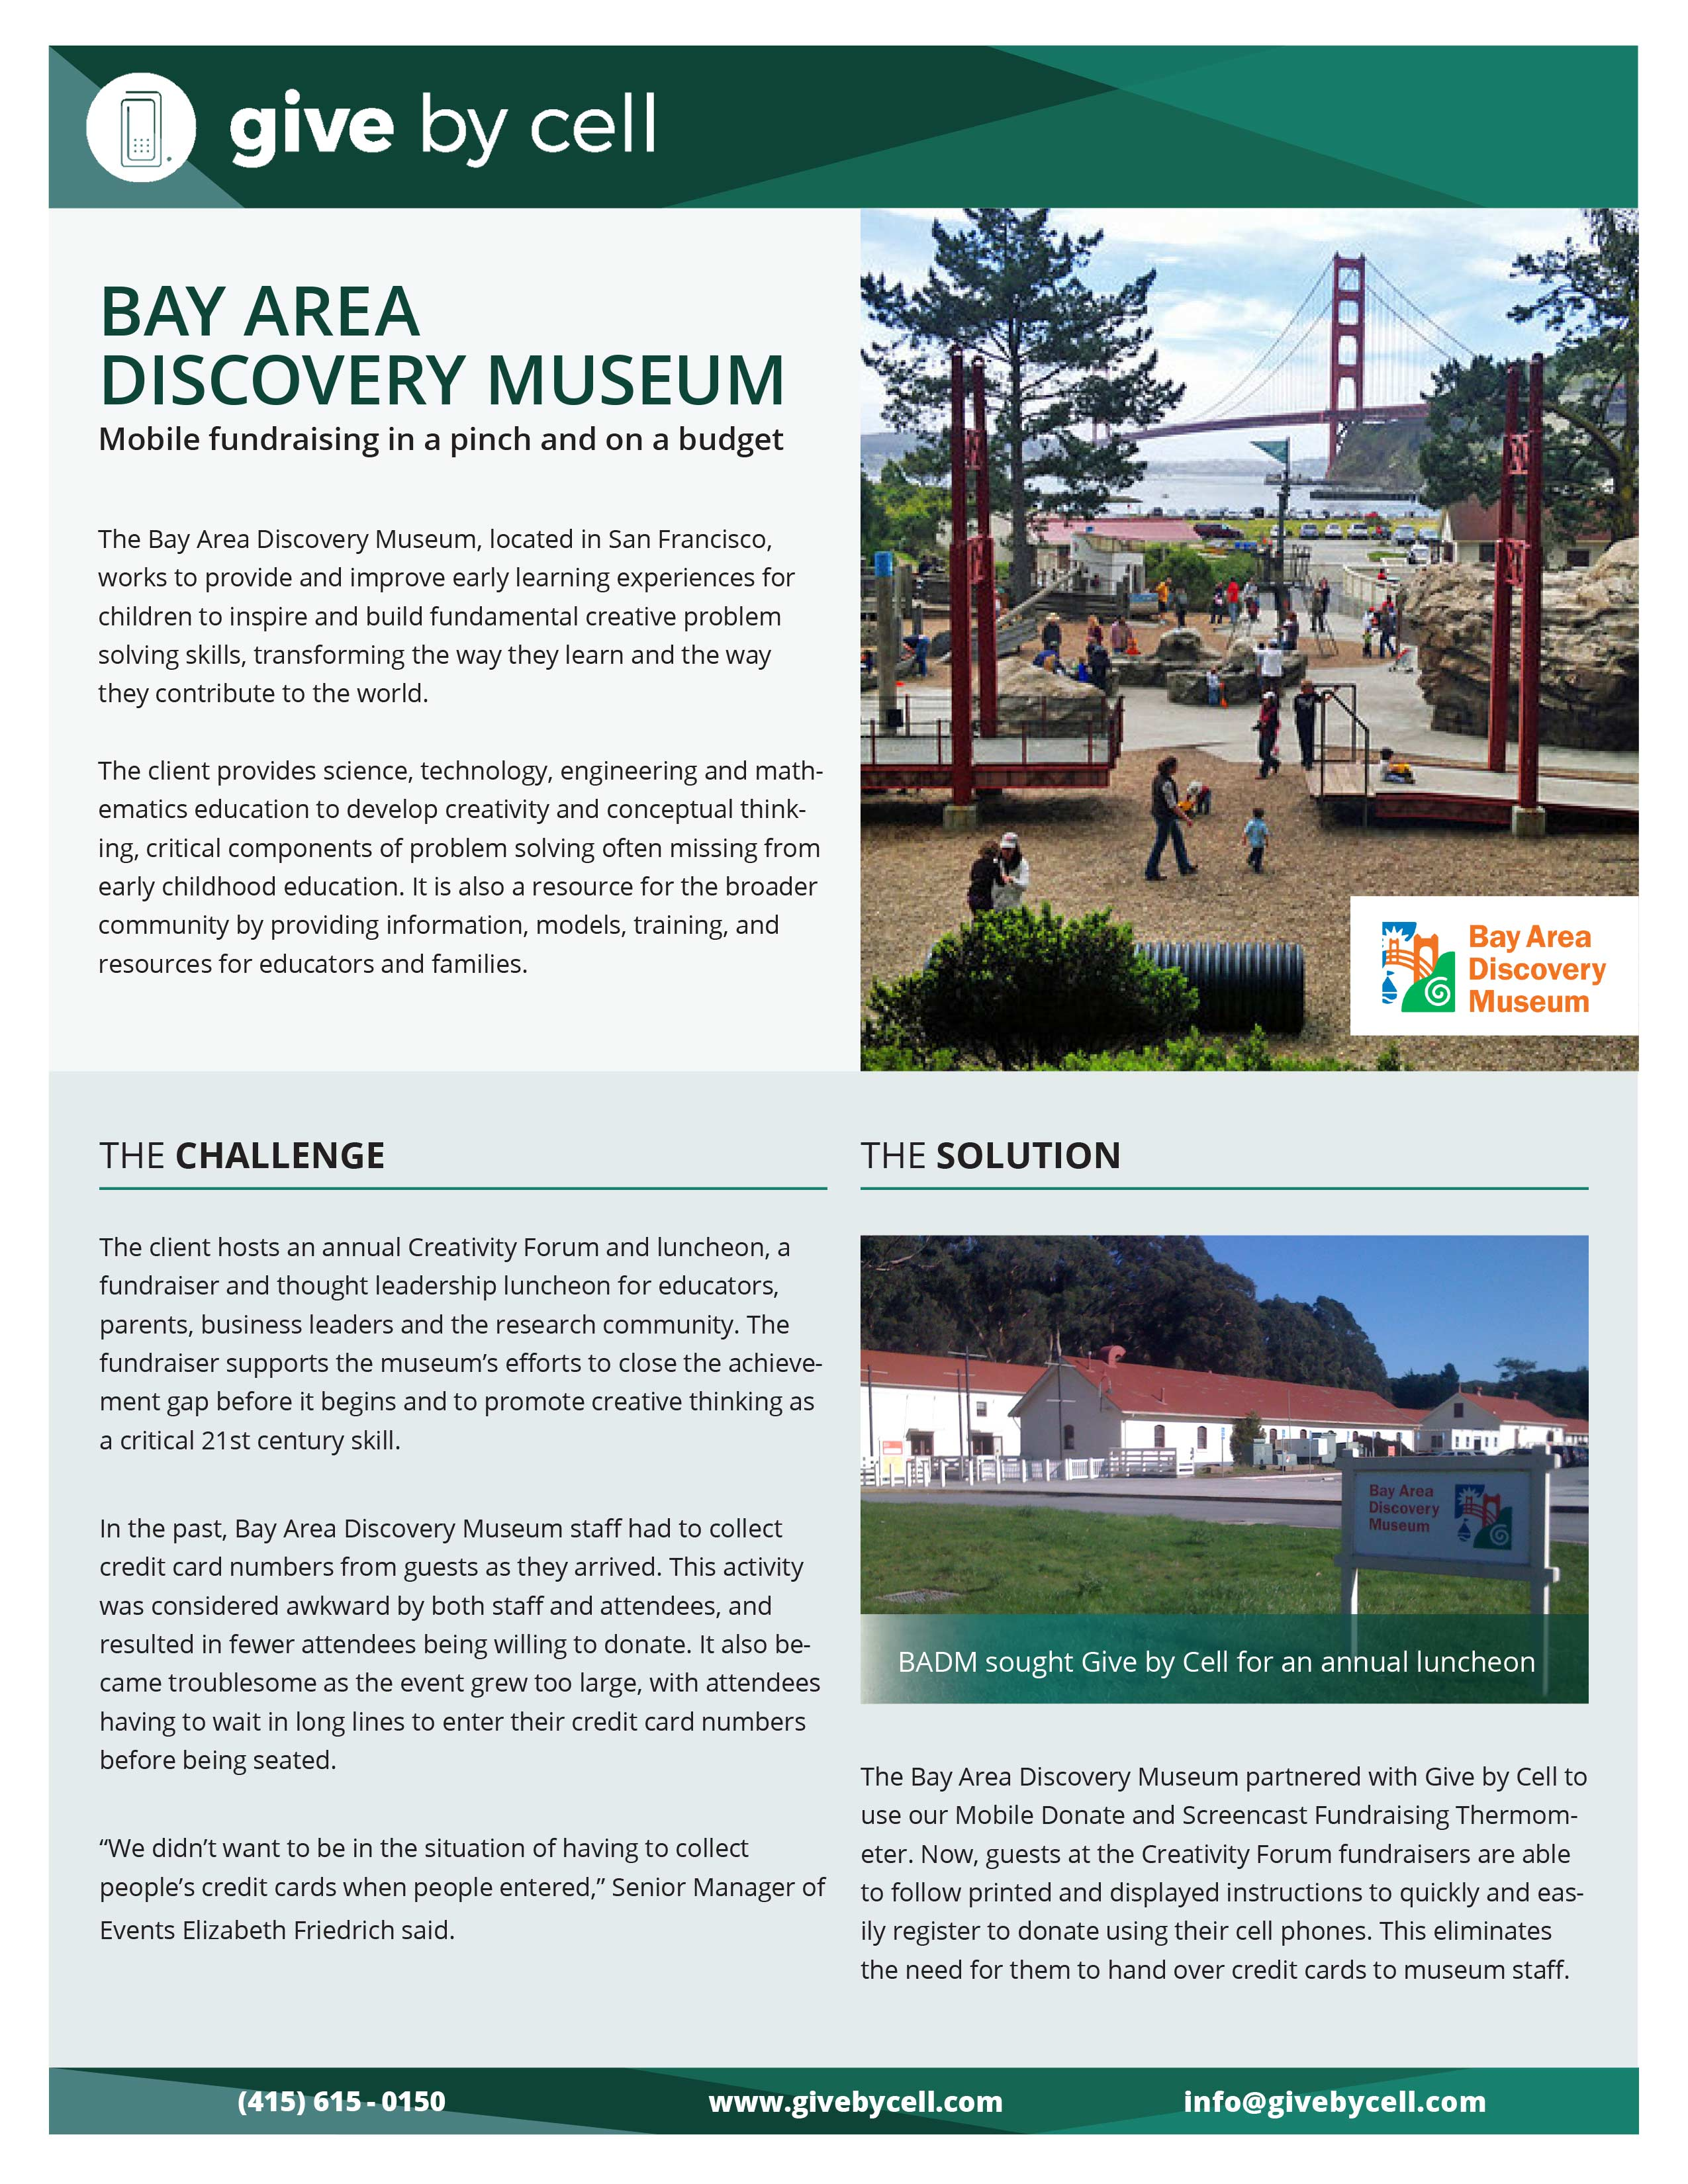 Bay-Area-Discovery-Museum.jpg